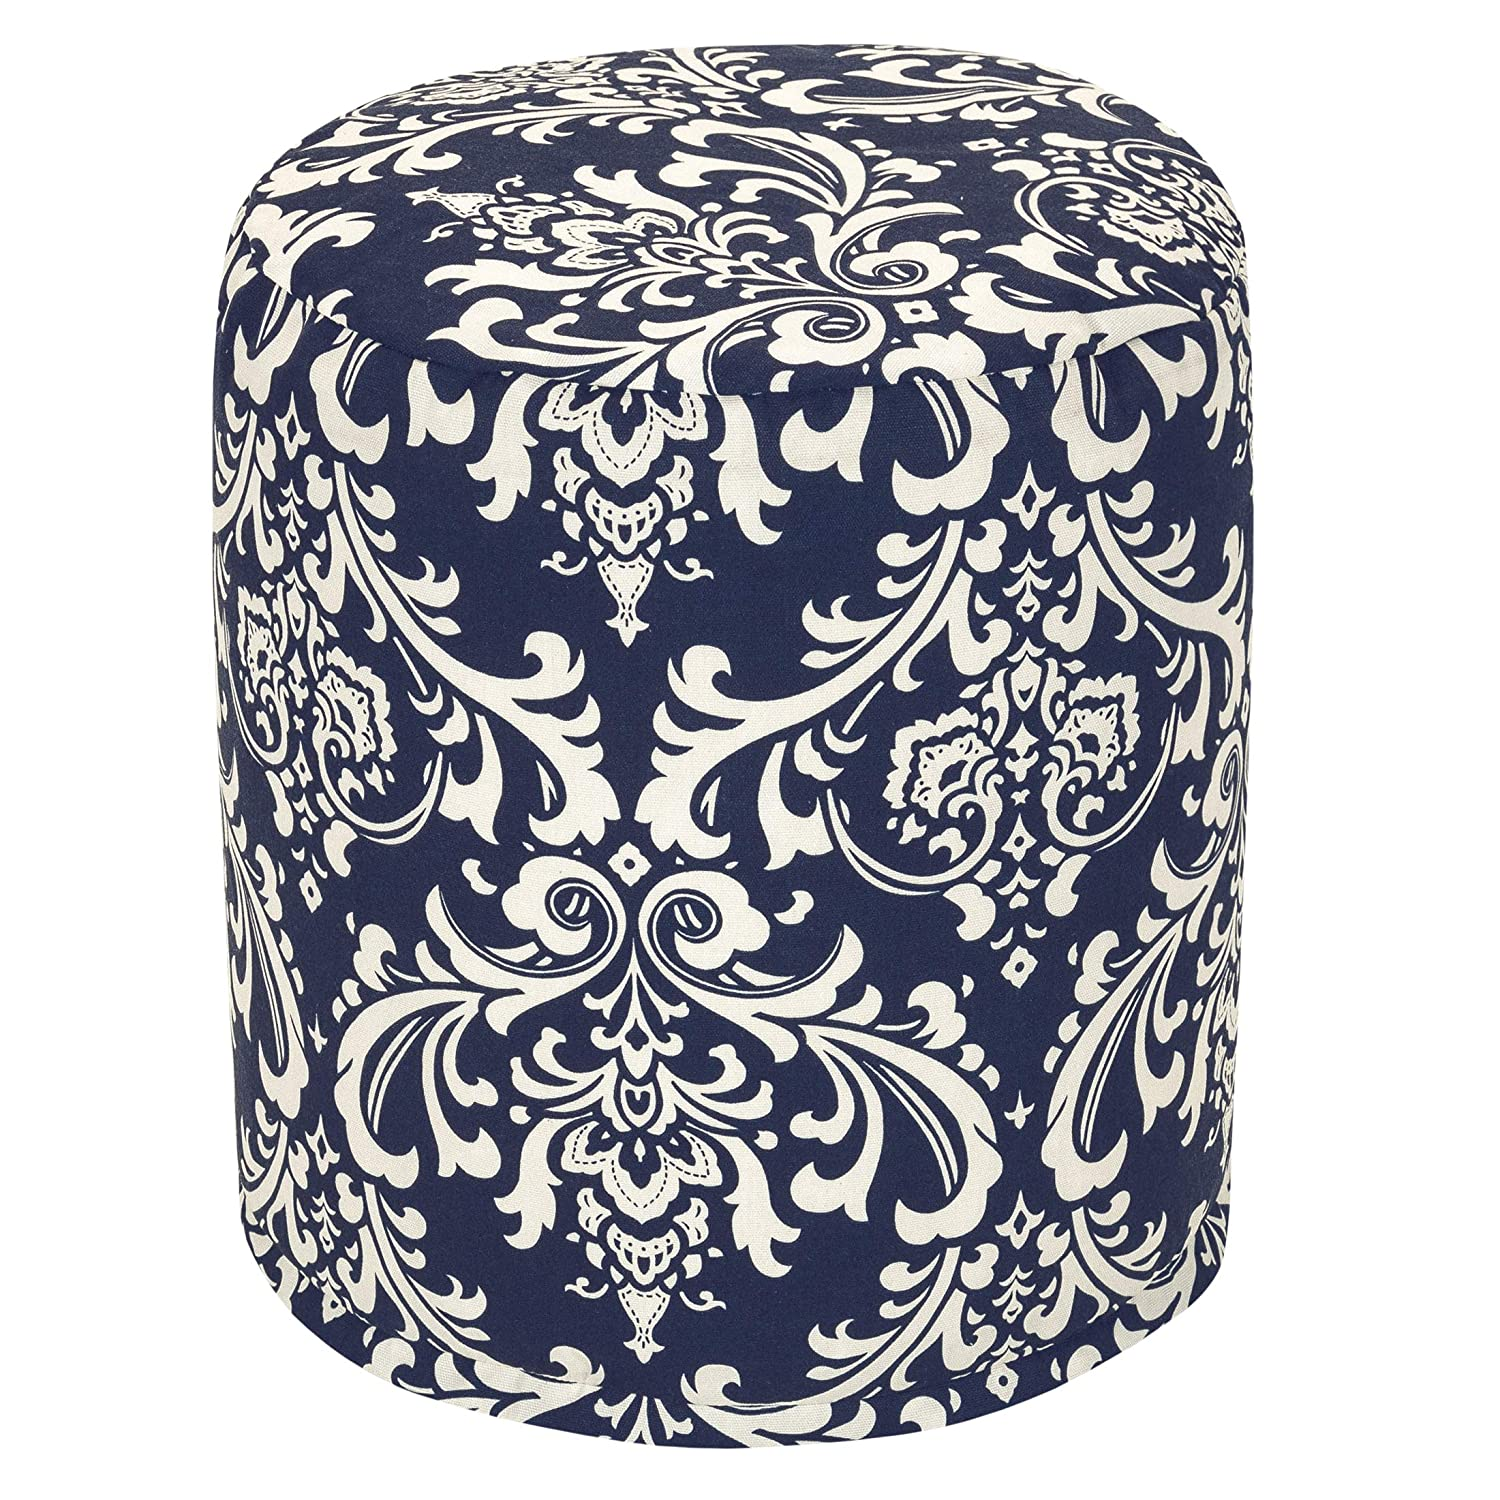 Majestic Home Goods Navy Blue French Quarter Indoor/Outdoor Bean Bag Ottoman Pouf 16 L x 16 W x 17 H Majestic Home Goods LG 85907220412